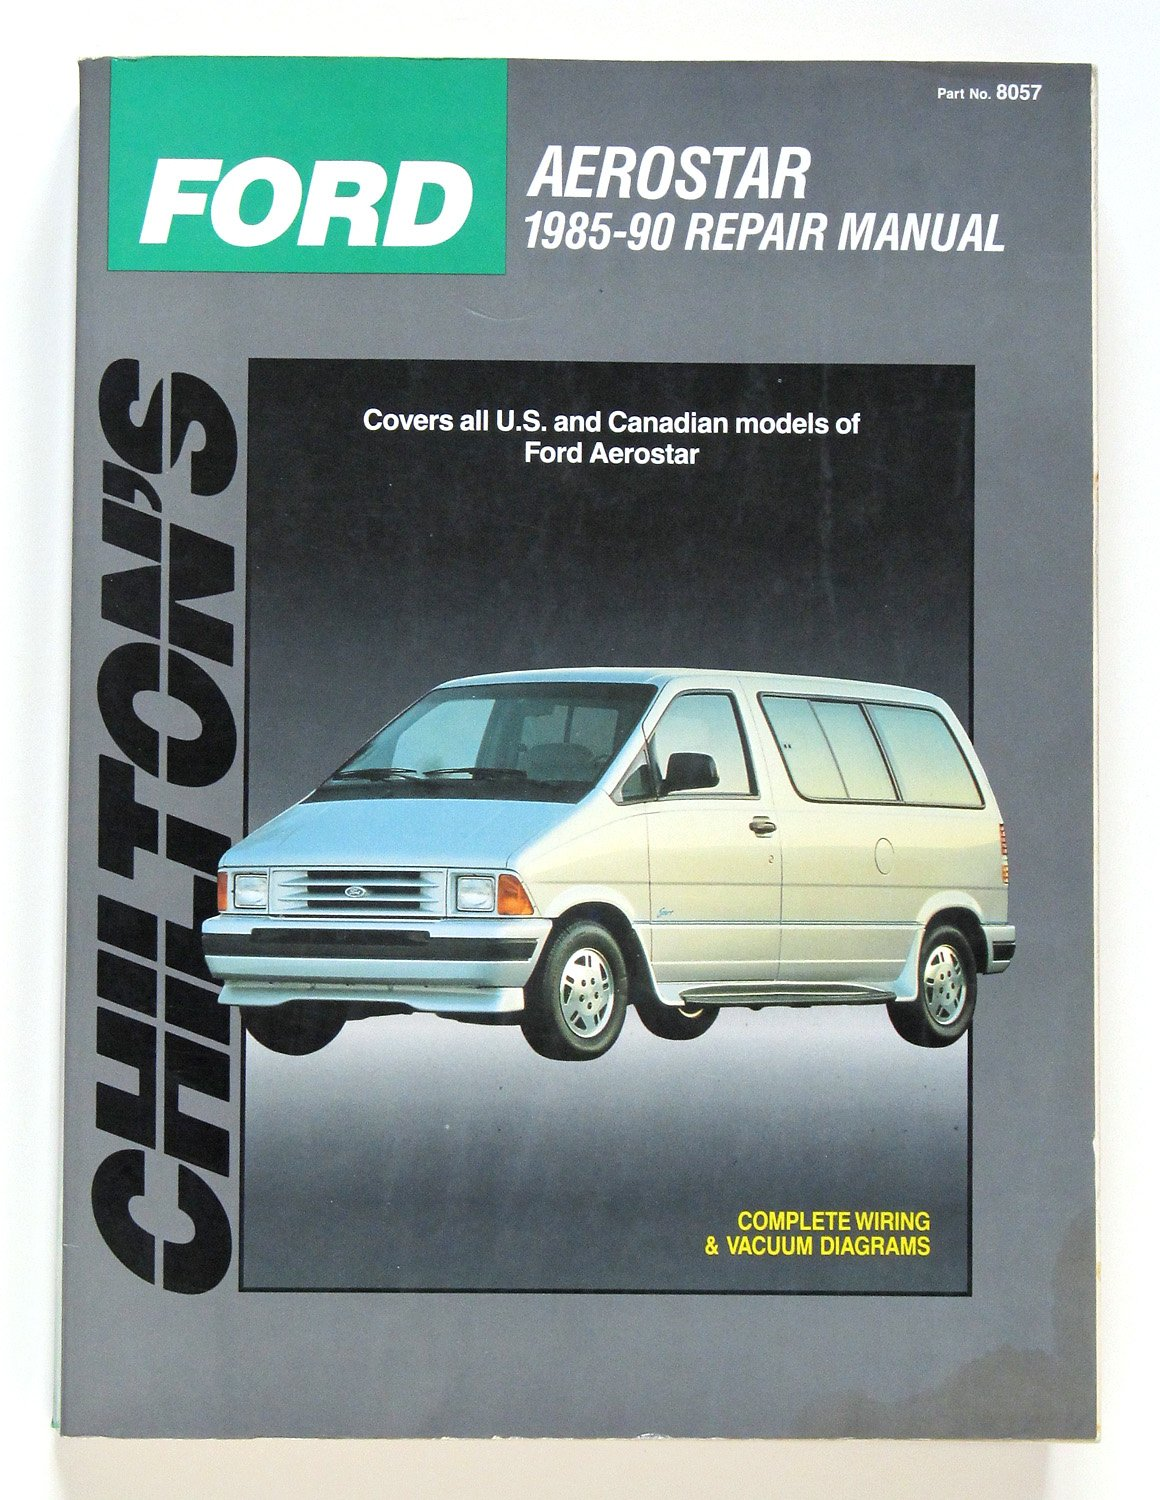 Buy Ford Aerostar 1985 90 Chiltons Total Car Care Book Online 1990 Engine Diagram At Low Prices In India Reviews